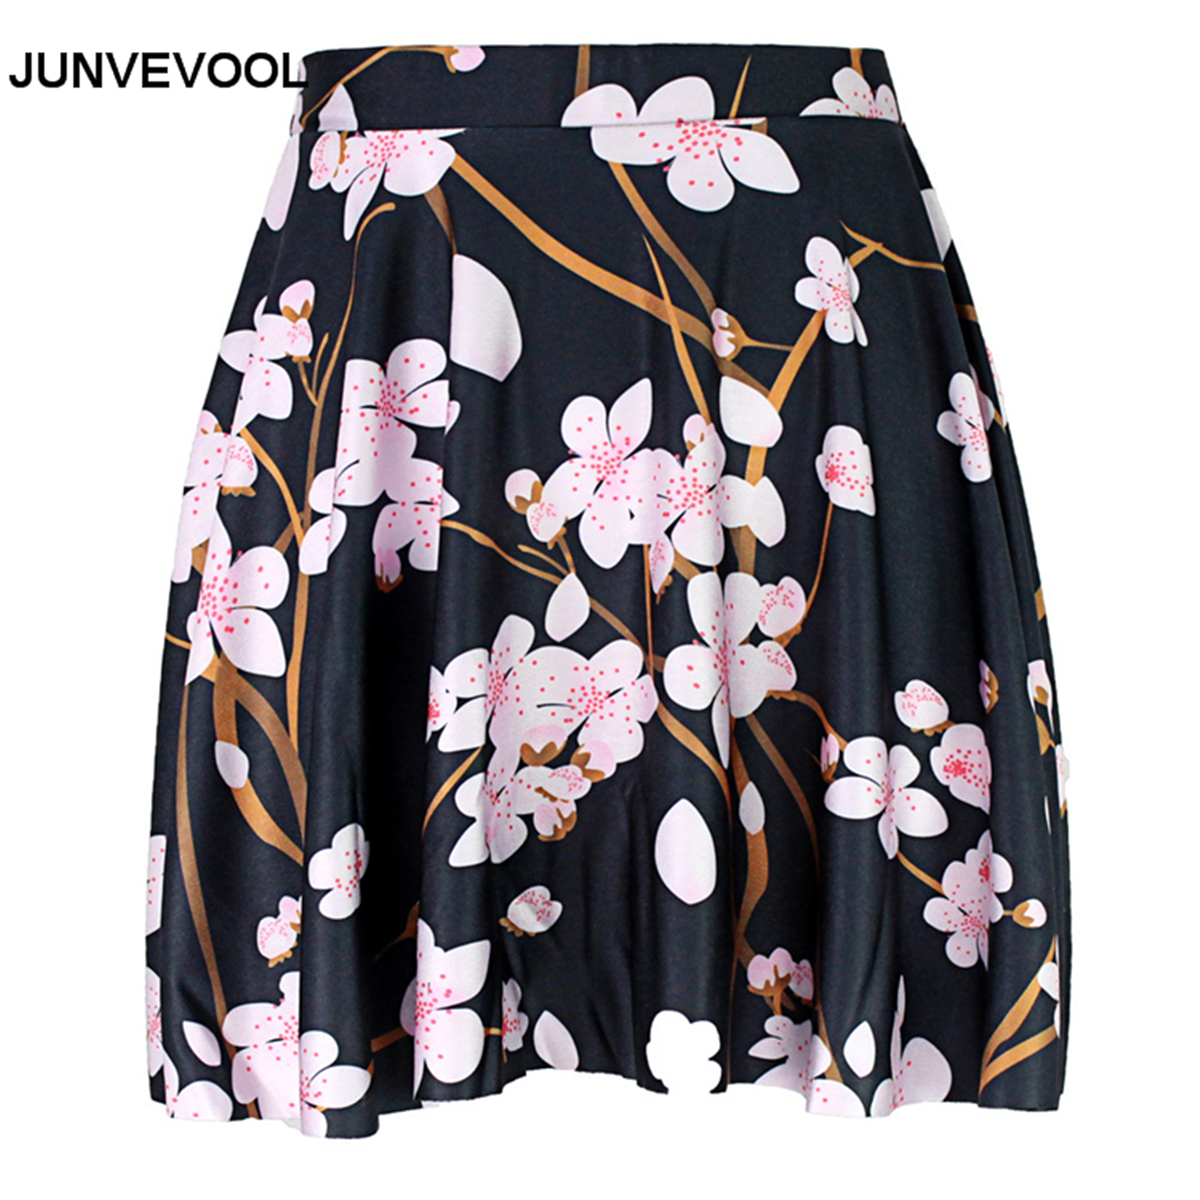 Floral Mini Skirt 3D Women Sexy Summer Beachwear Ladies Digital Printing Fashion Hot Sale Flower Vogue Skirts Pleated Clothing